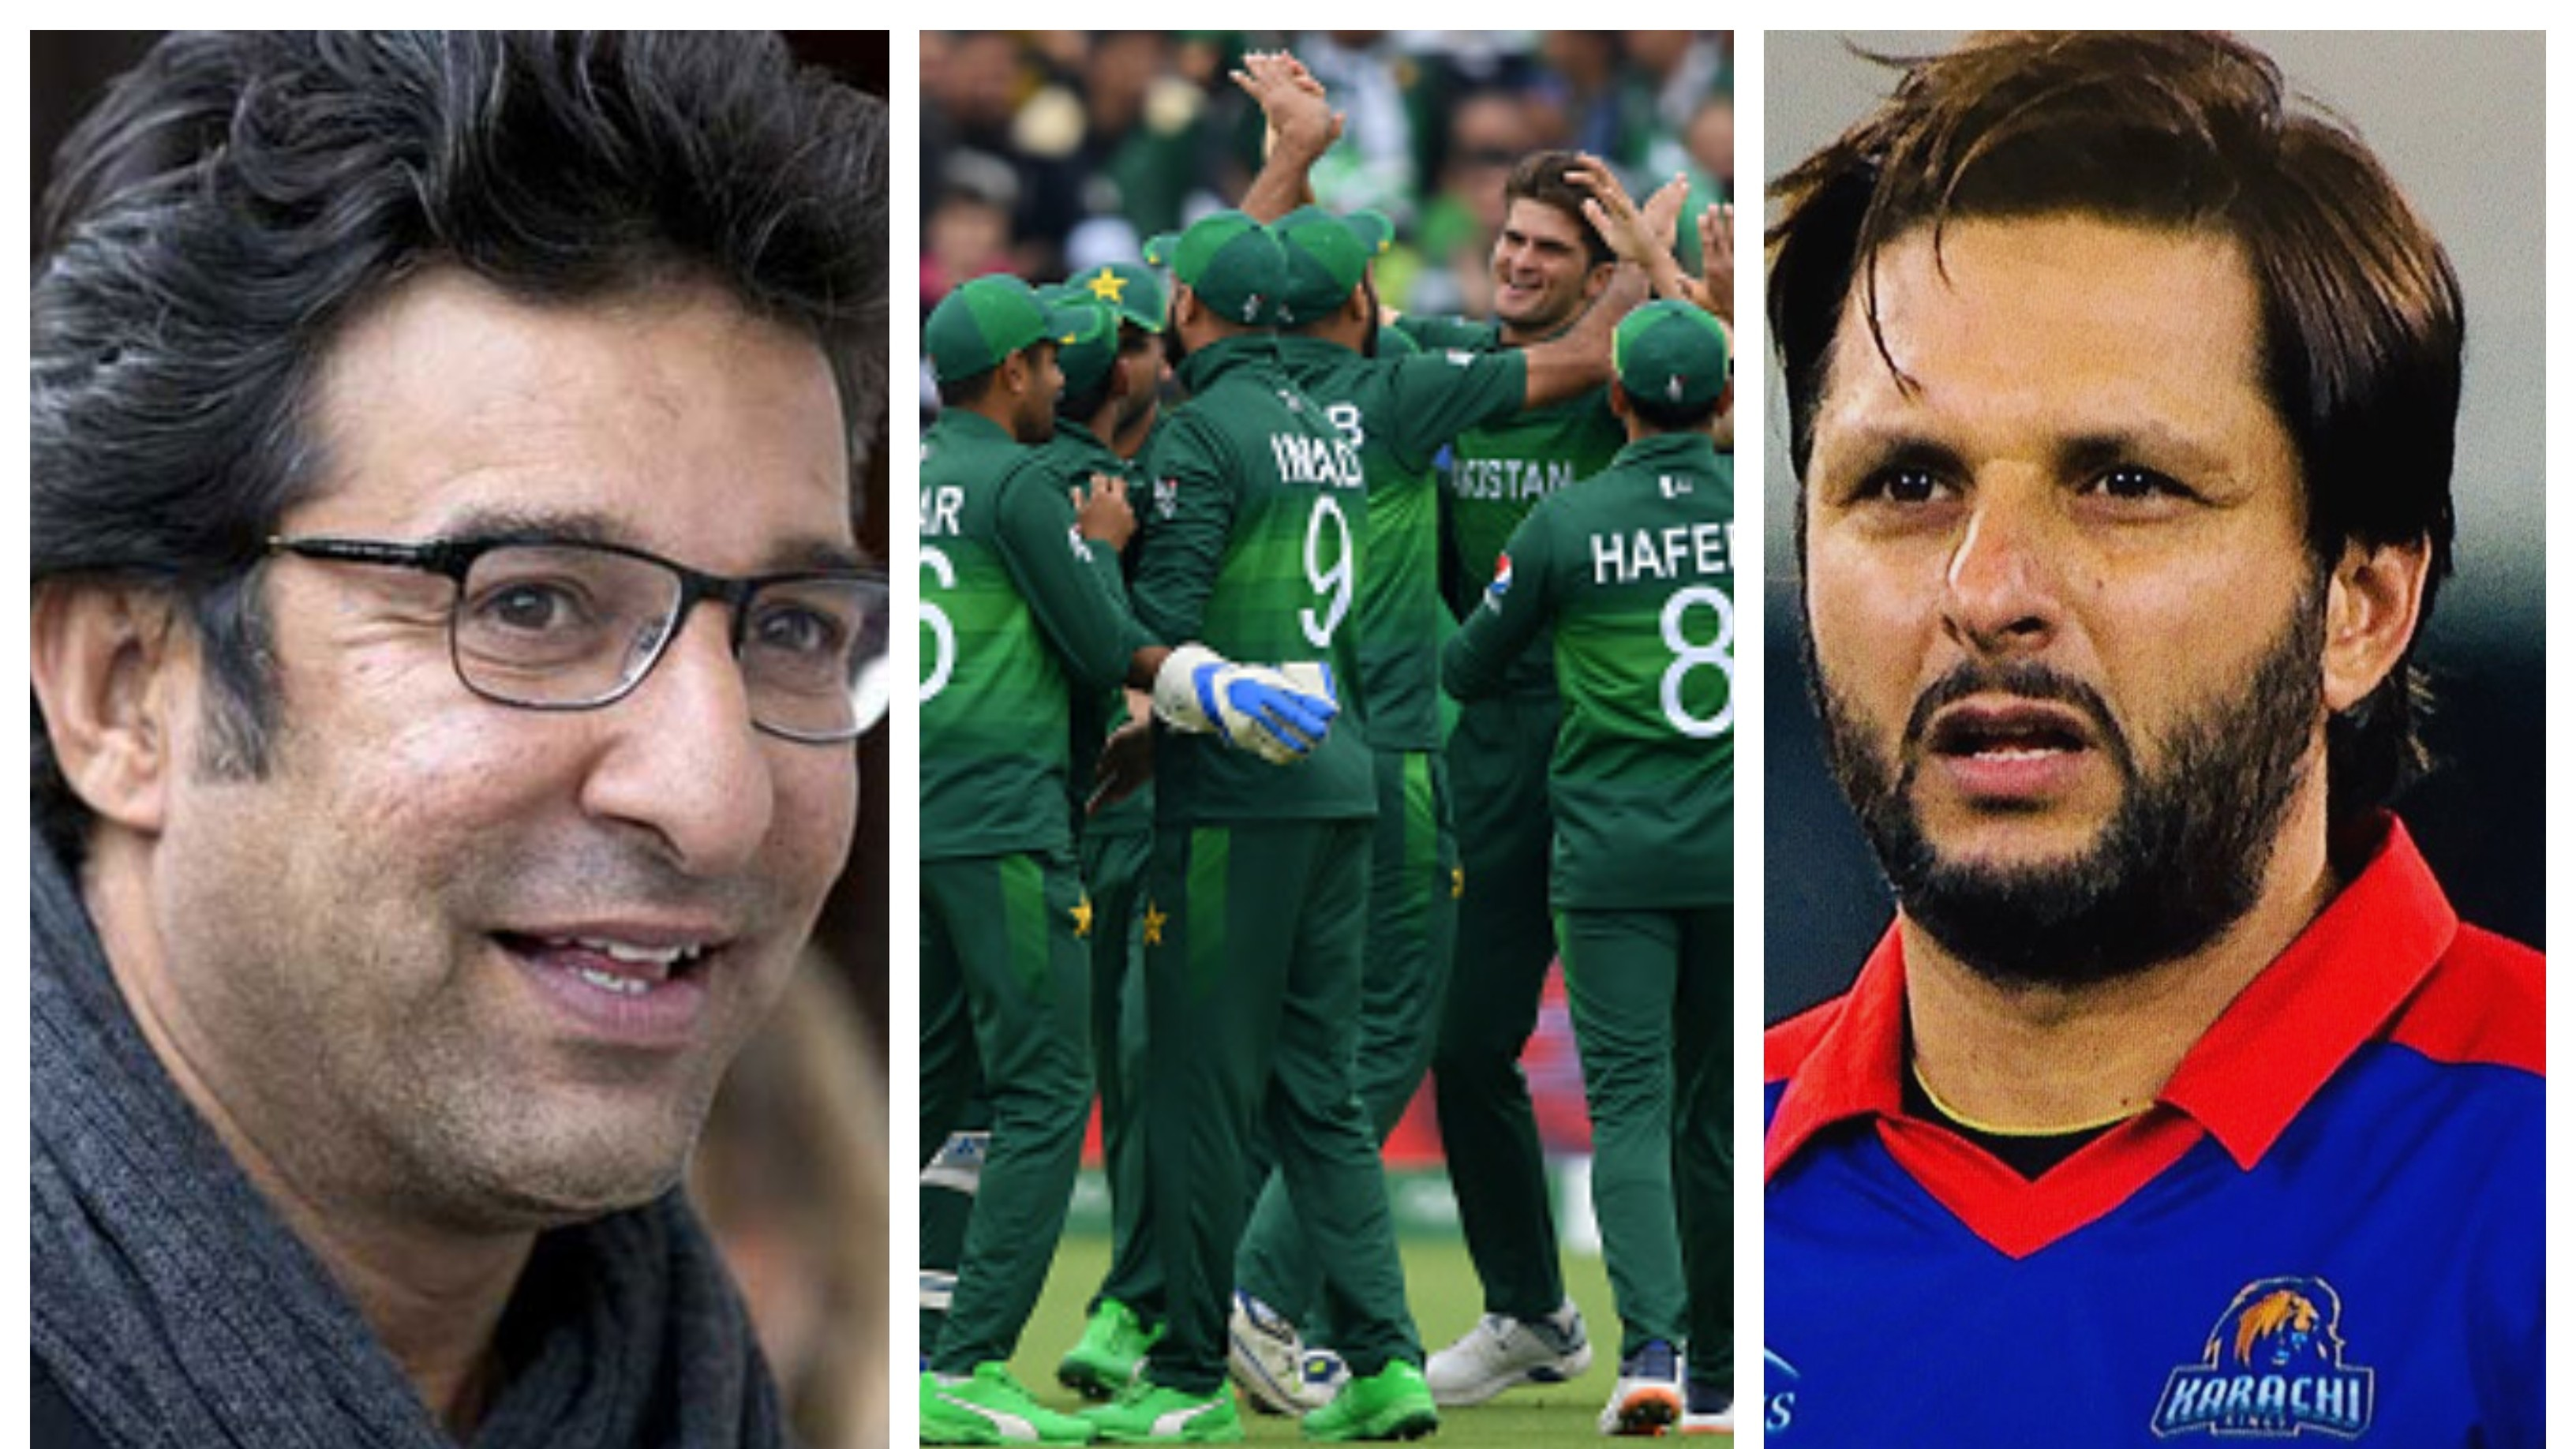 CWC 2019: Twitter reacts as Shaheen Afridi's 3/28 restricts New Zealand to 237/6 despite Neesham's heroics